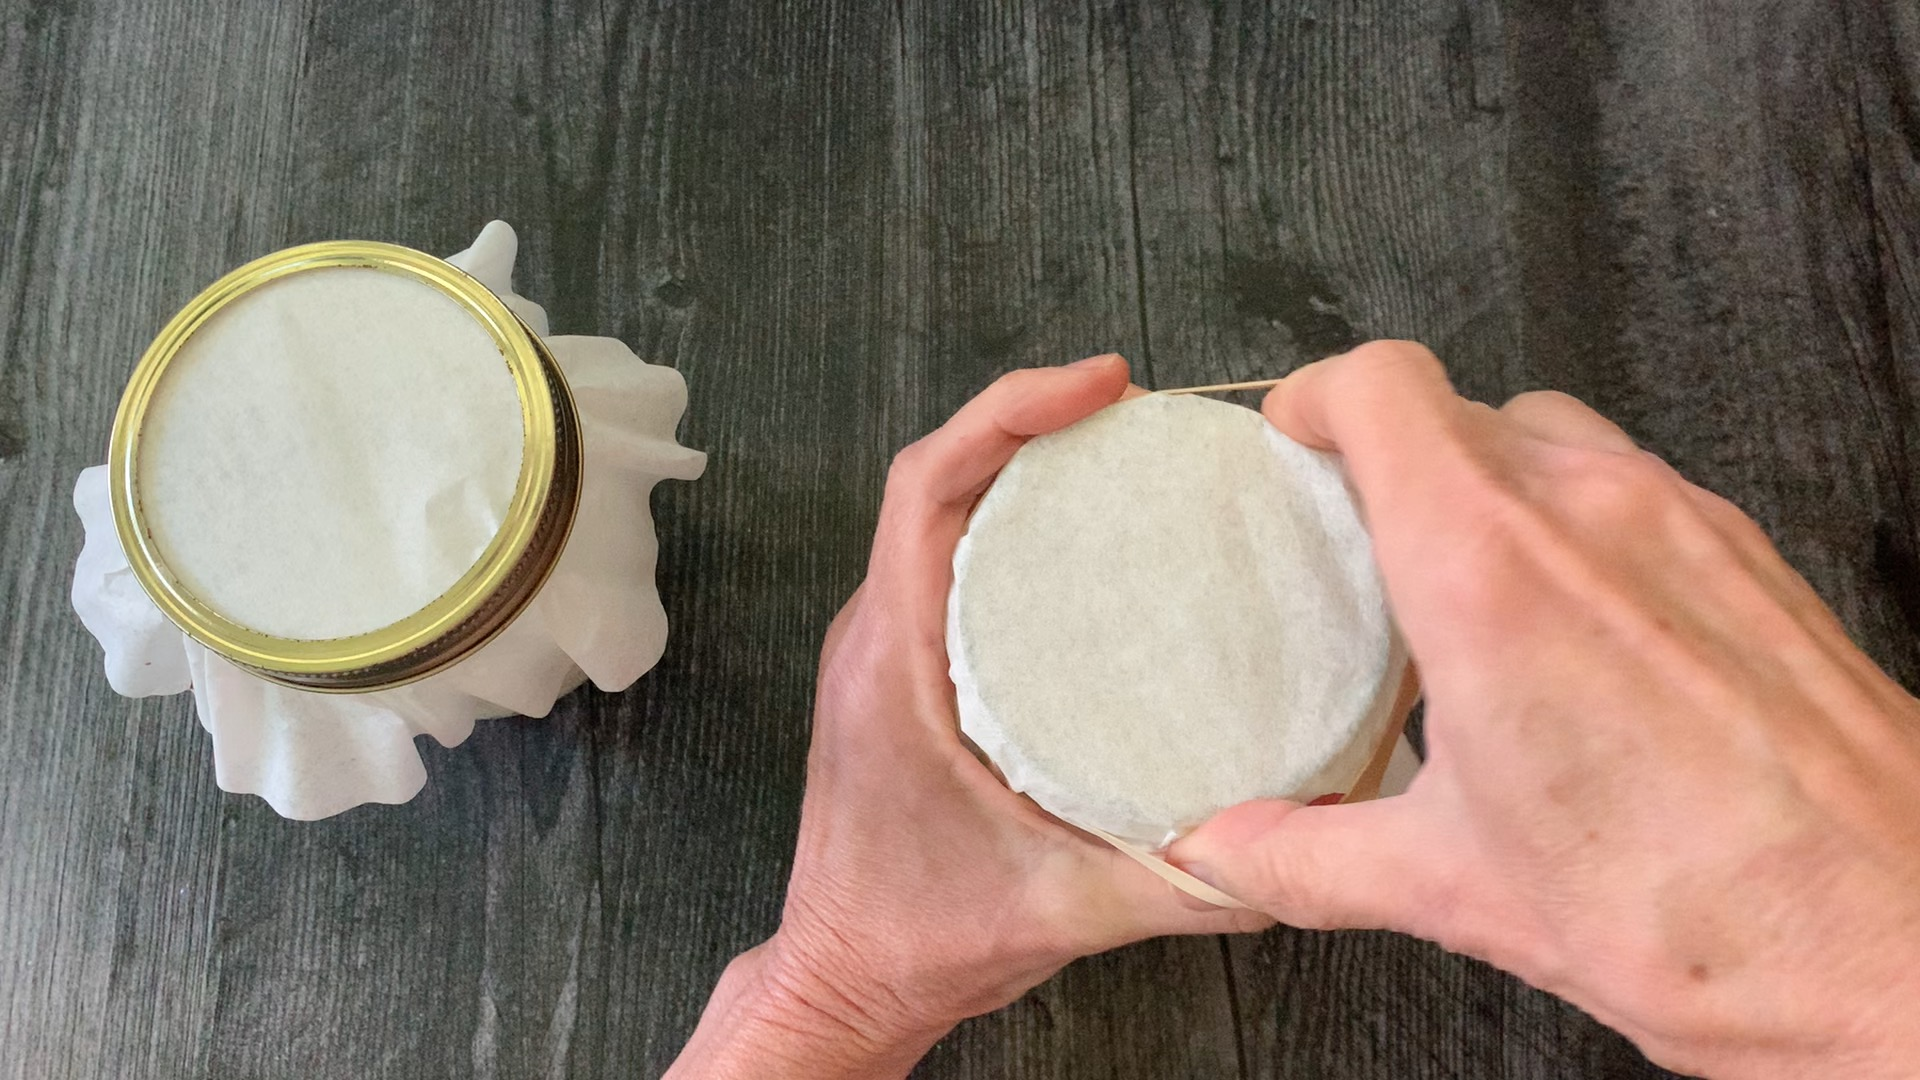 covering the jar